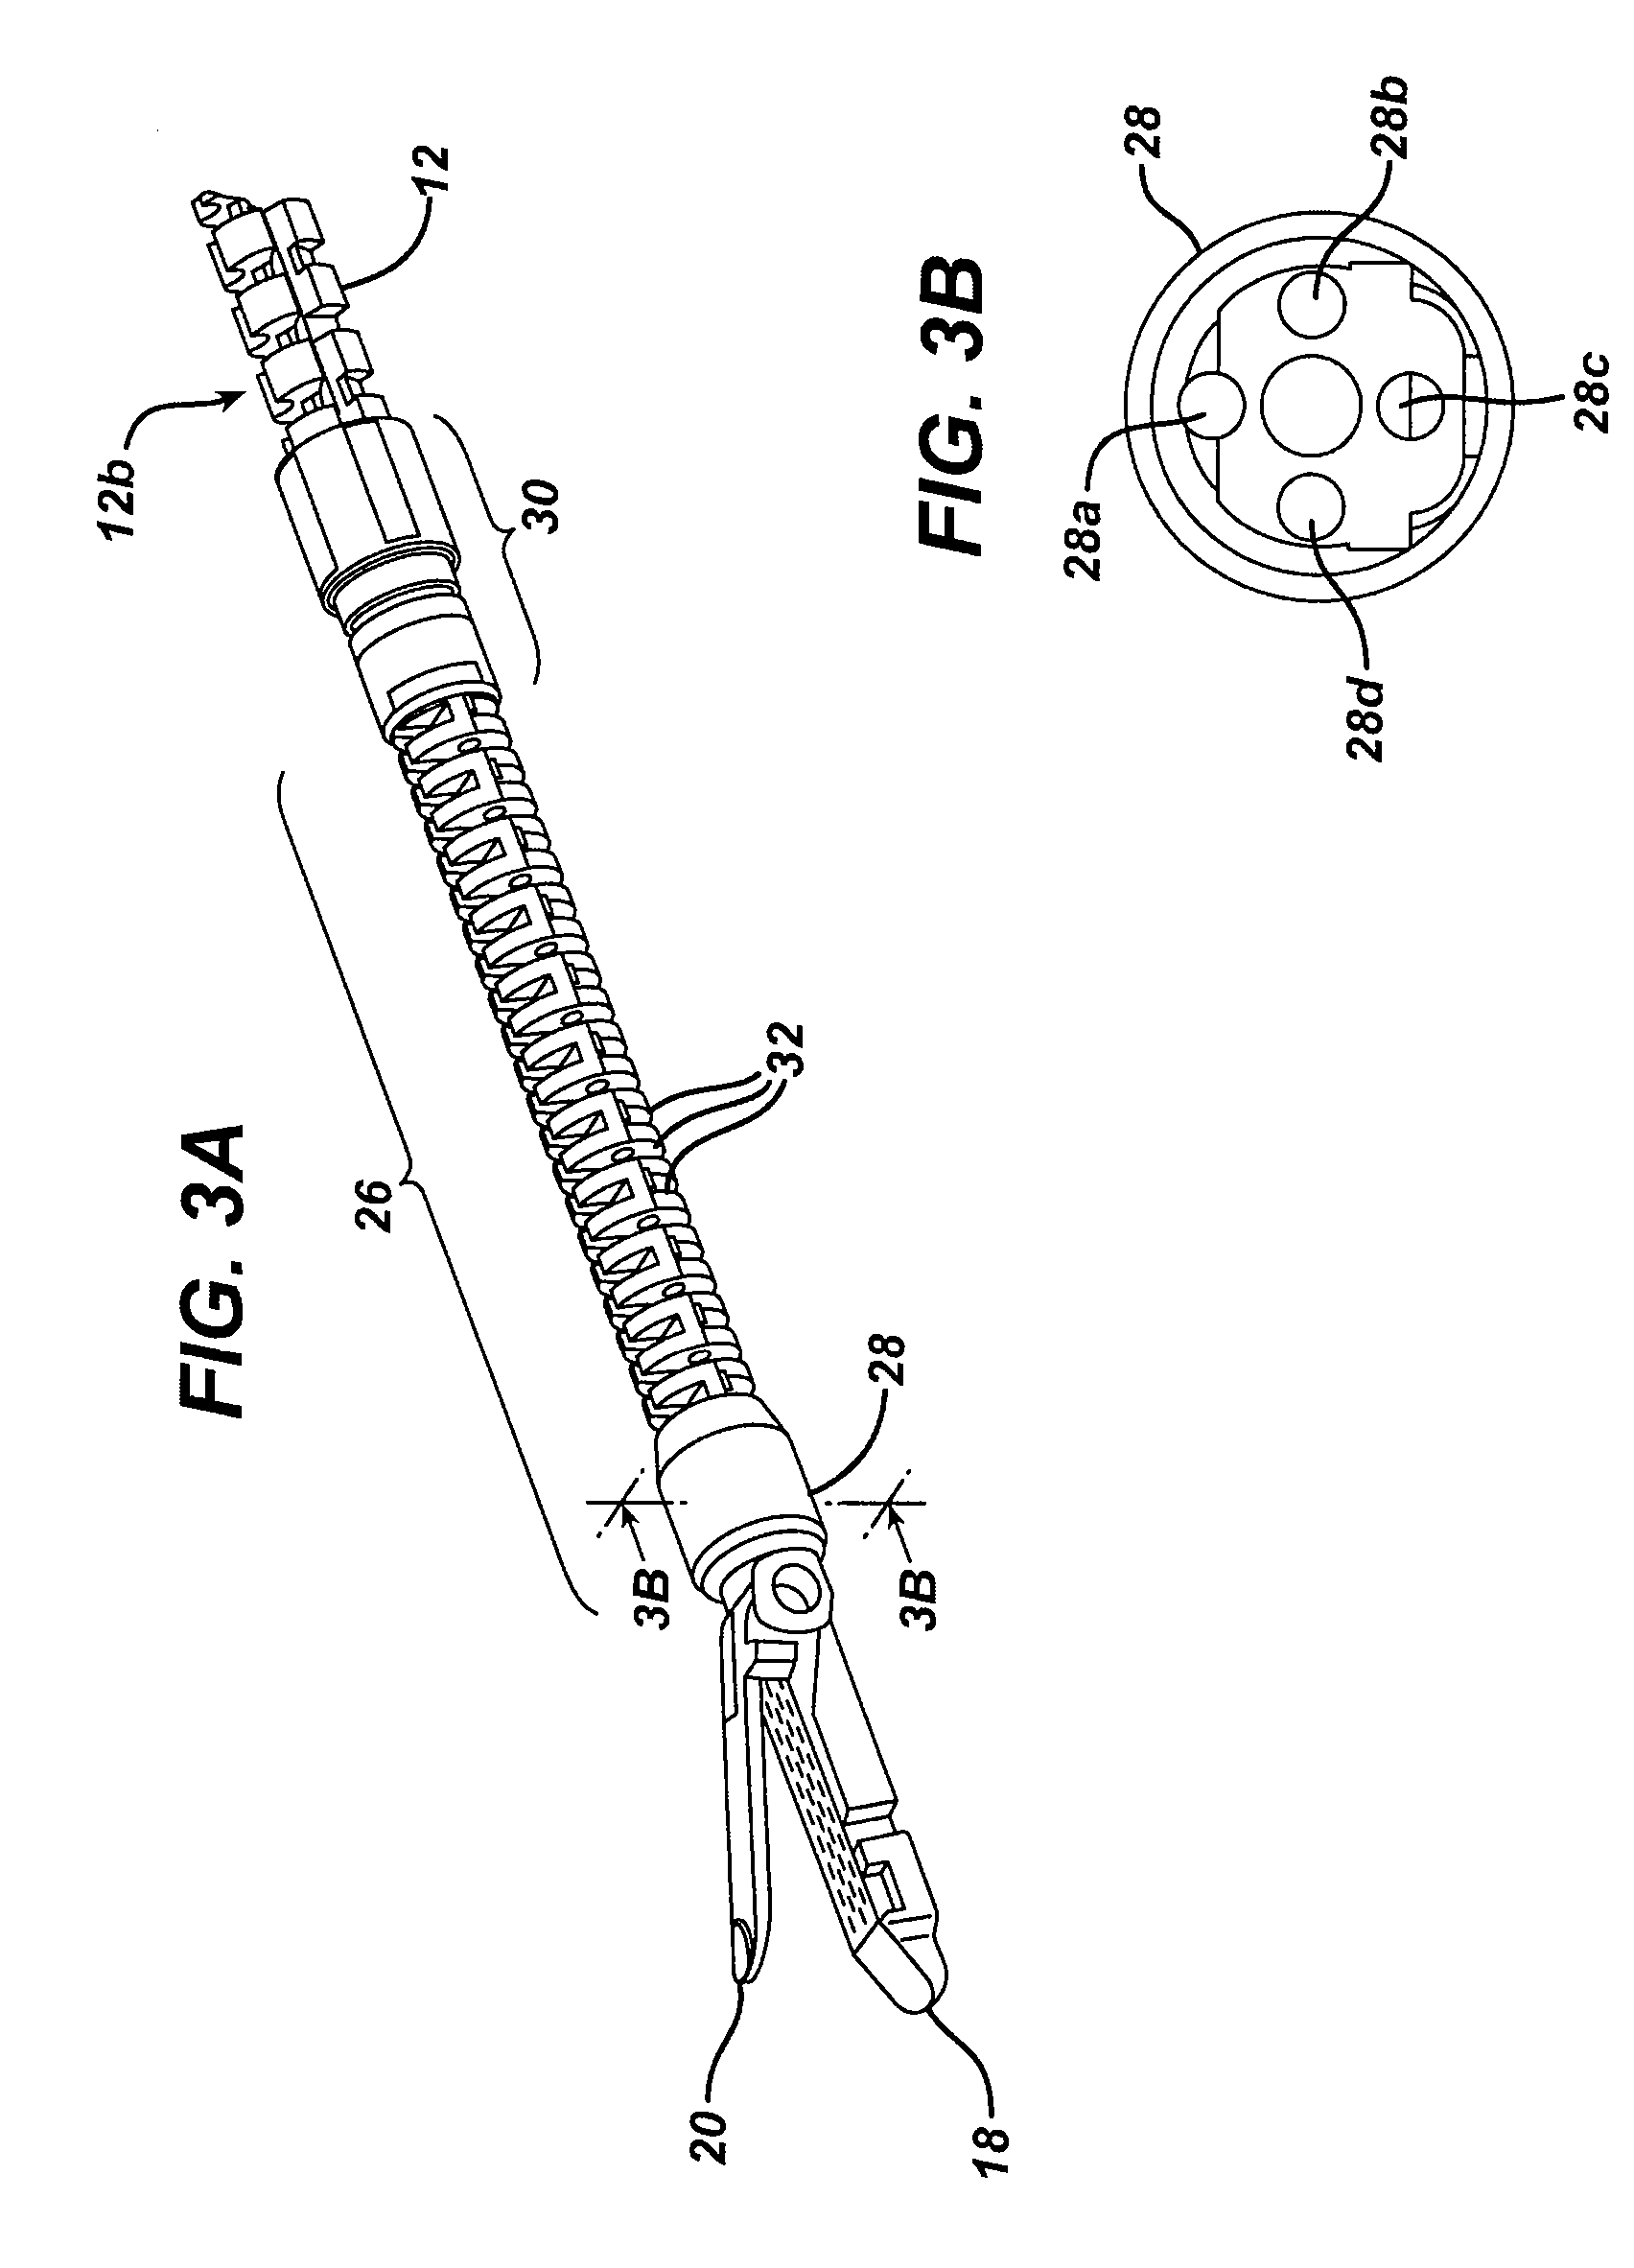 Us20070221701a1 Surgical Fastener And Cutter With Mimicking End Honda C110d Electrical Wiring Diagram Effector Google Patents